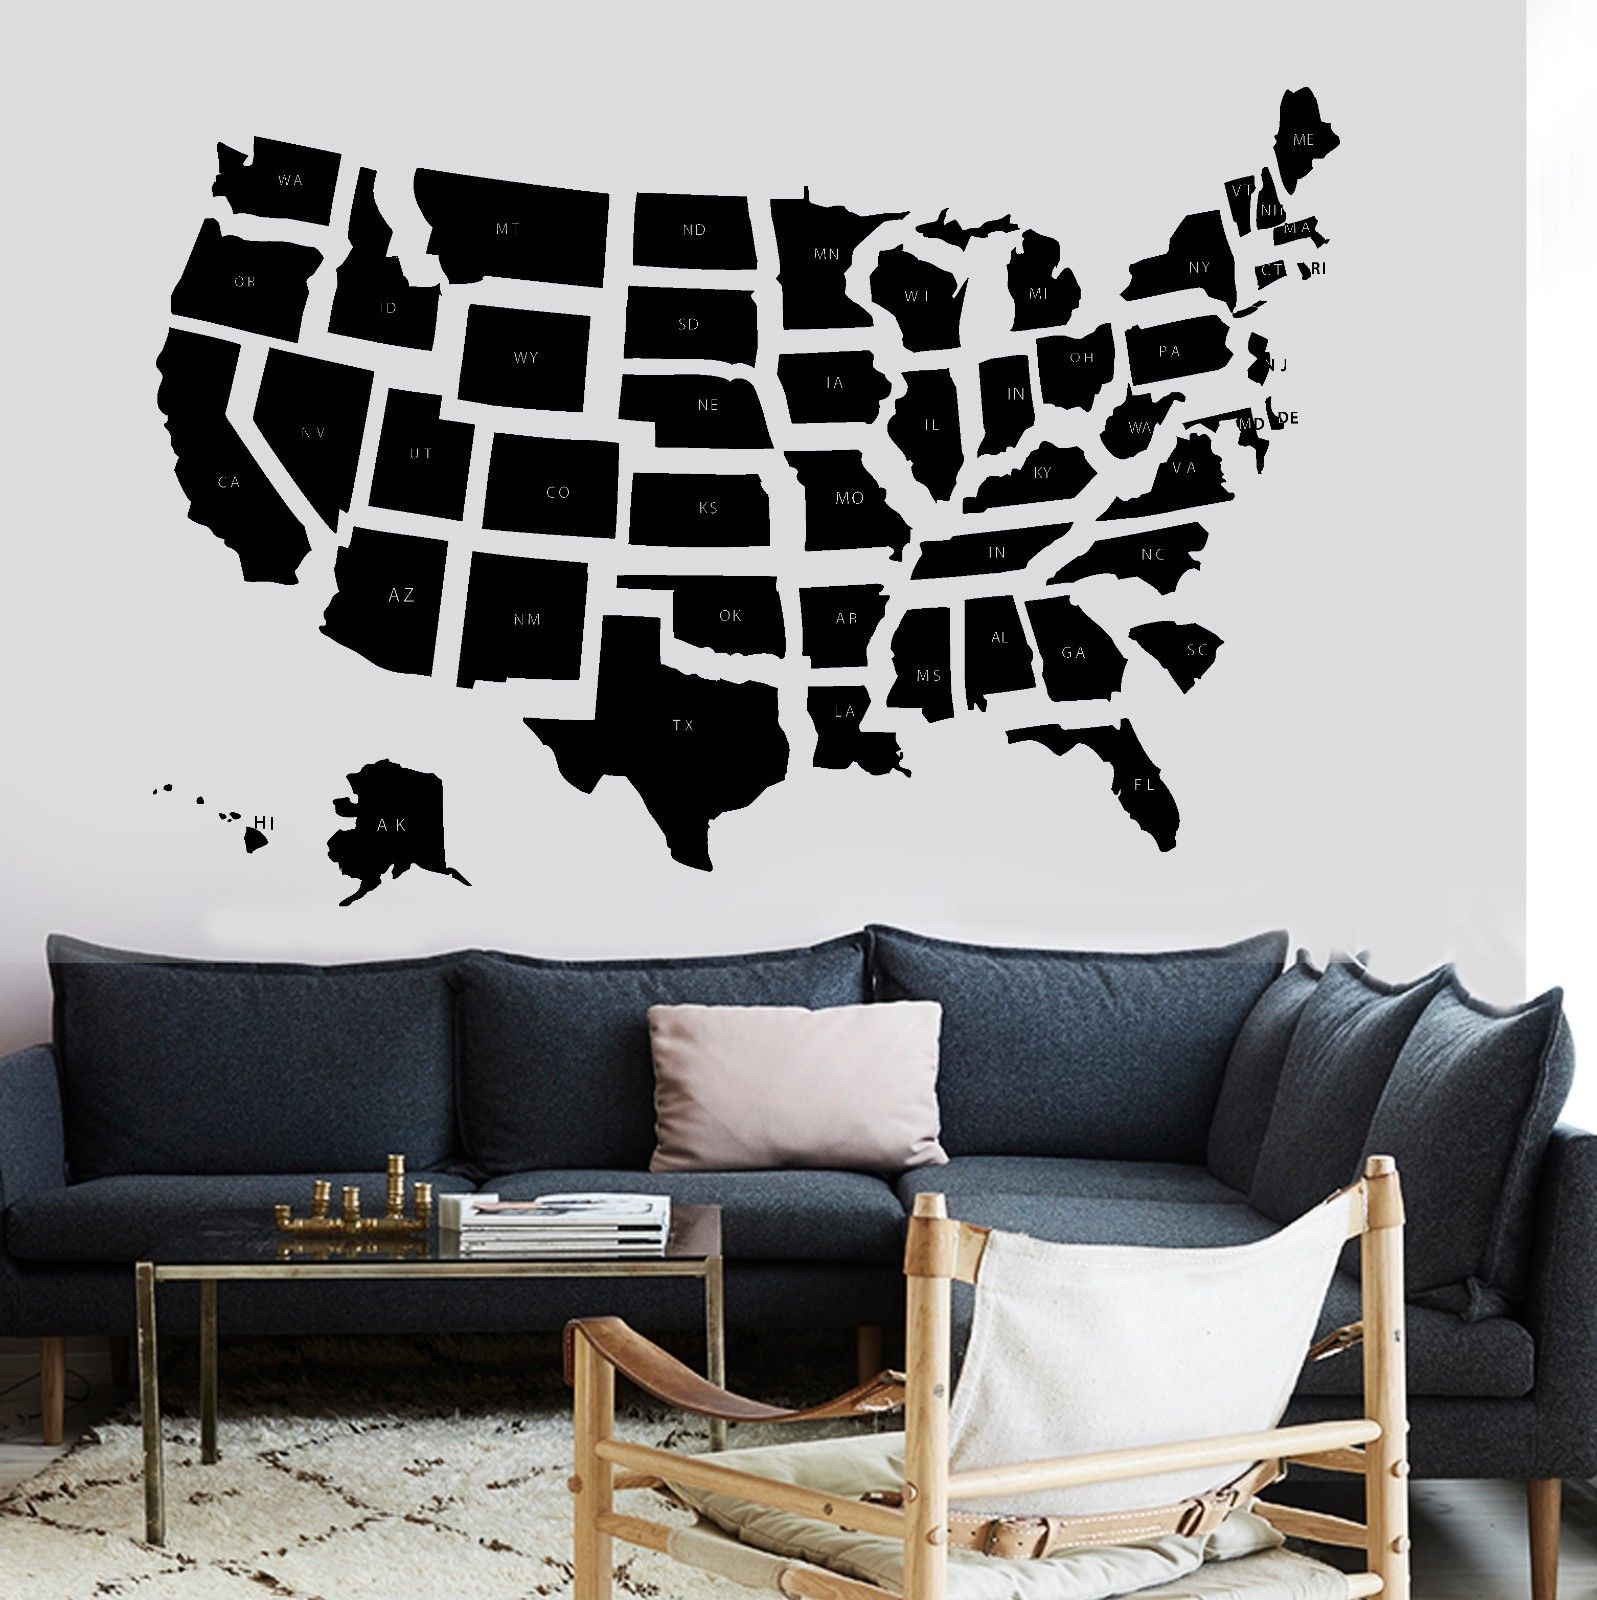 online get cheap usa map decal aliexpresscom  alibaba group - new popular home wall decal map usa premium quality school states vinylsticker free shipping(